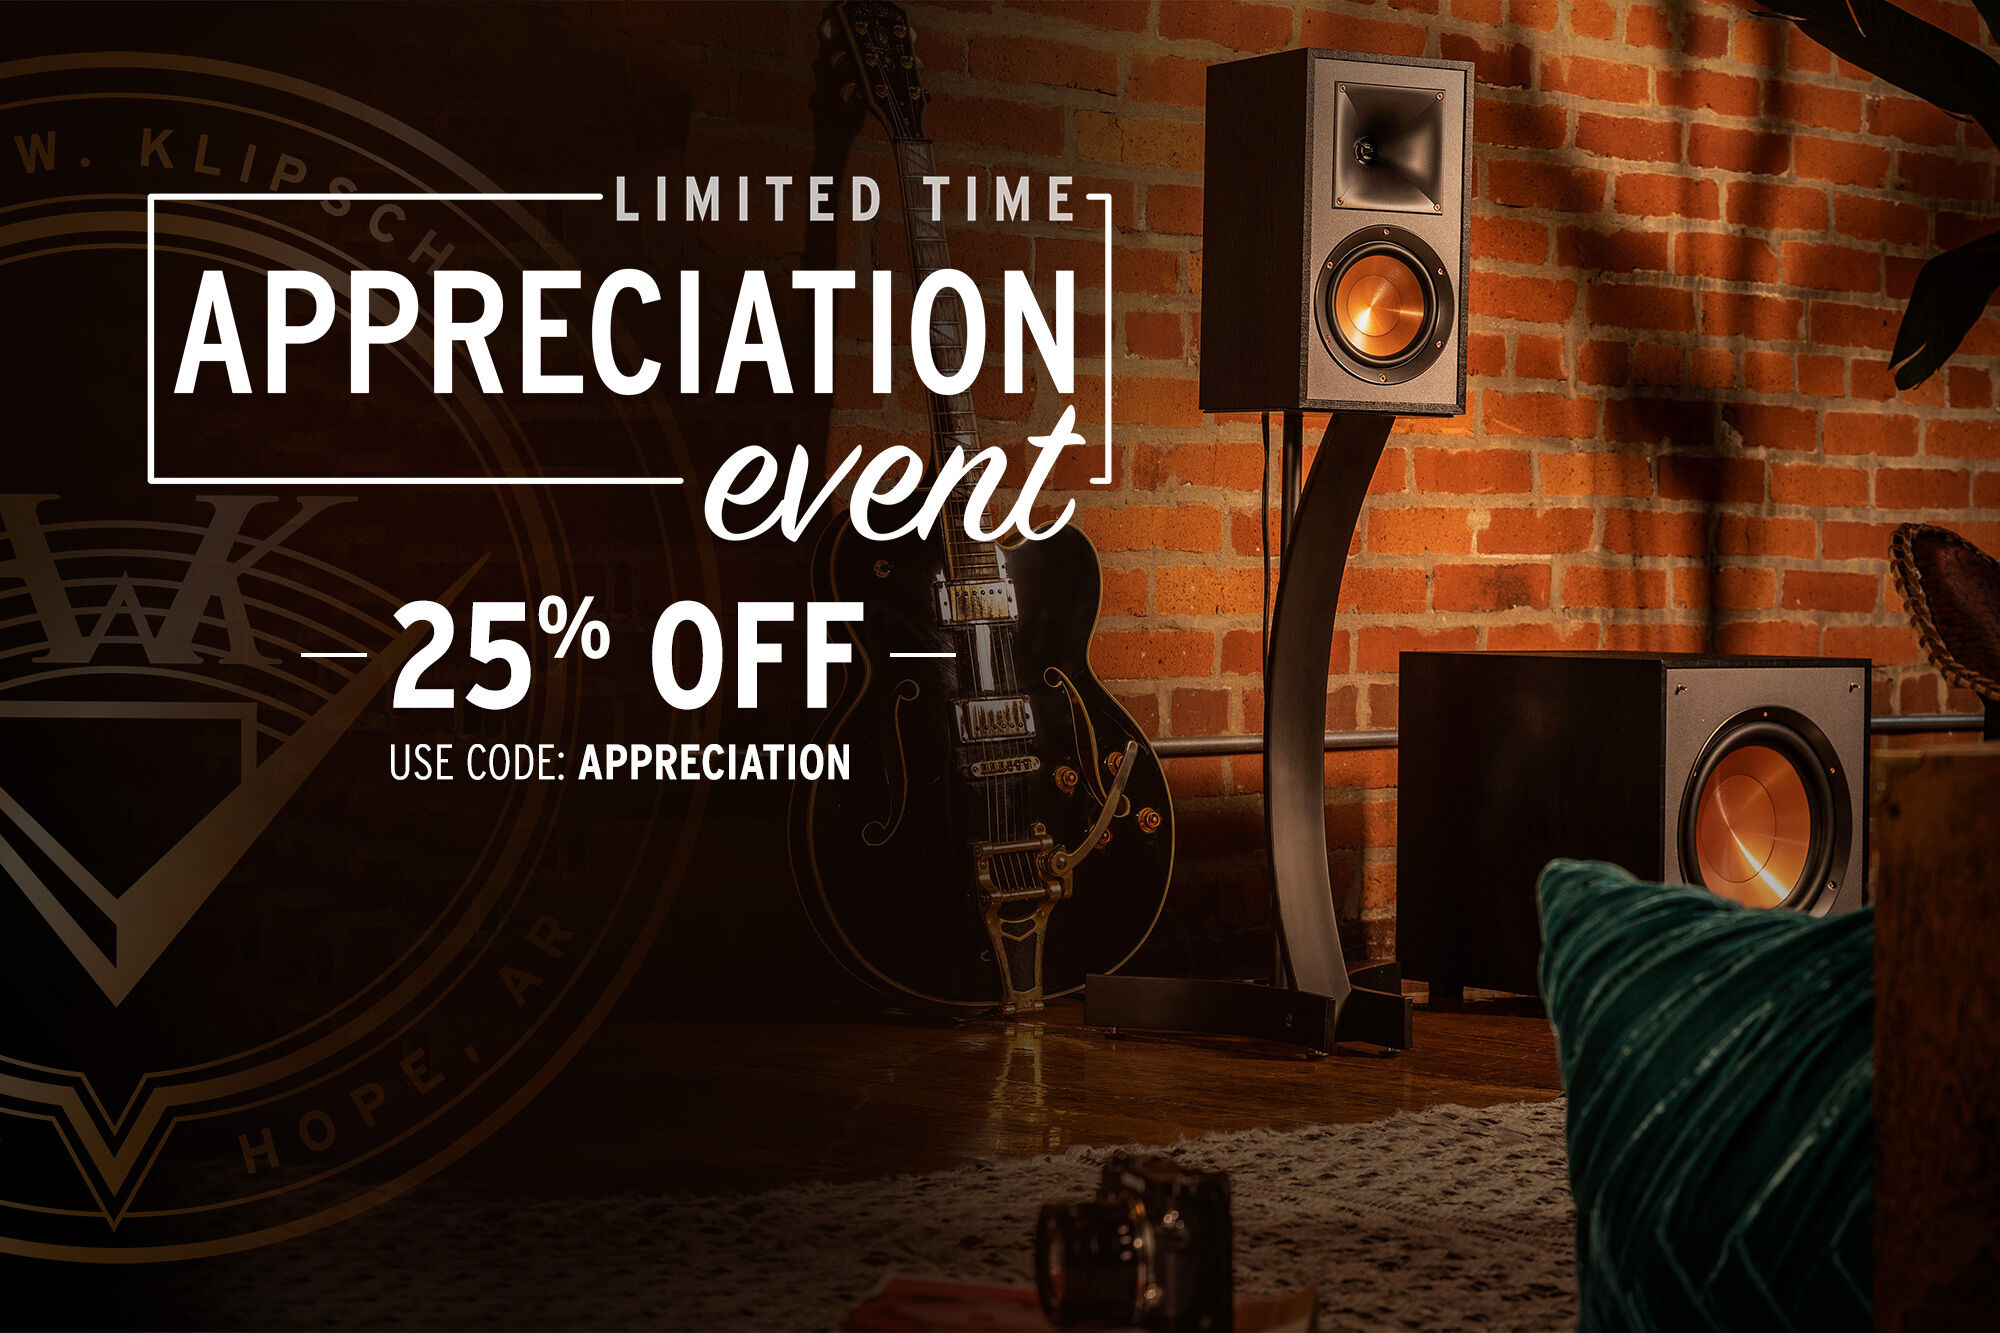 Limited Time Appreciation Event - get up to 25% off on select speakers and headphones by using code APPRECIATION at checkout.